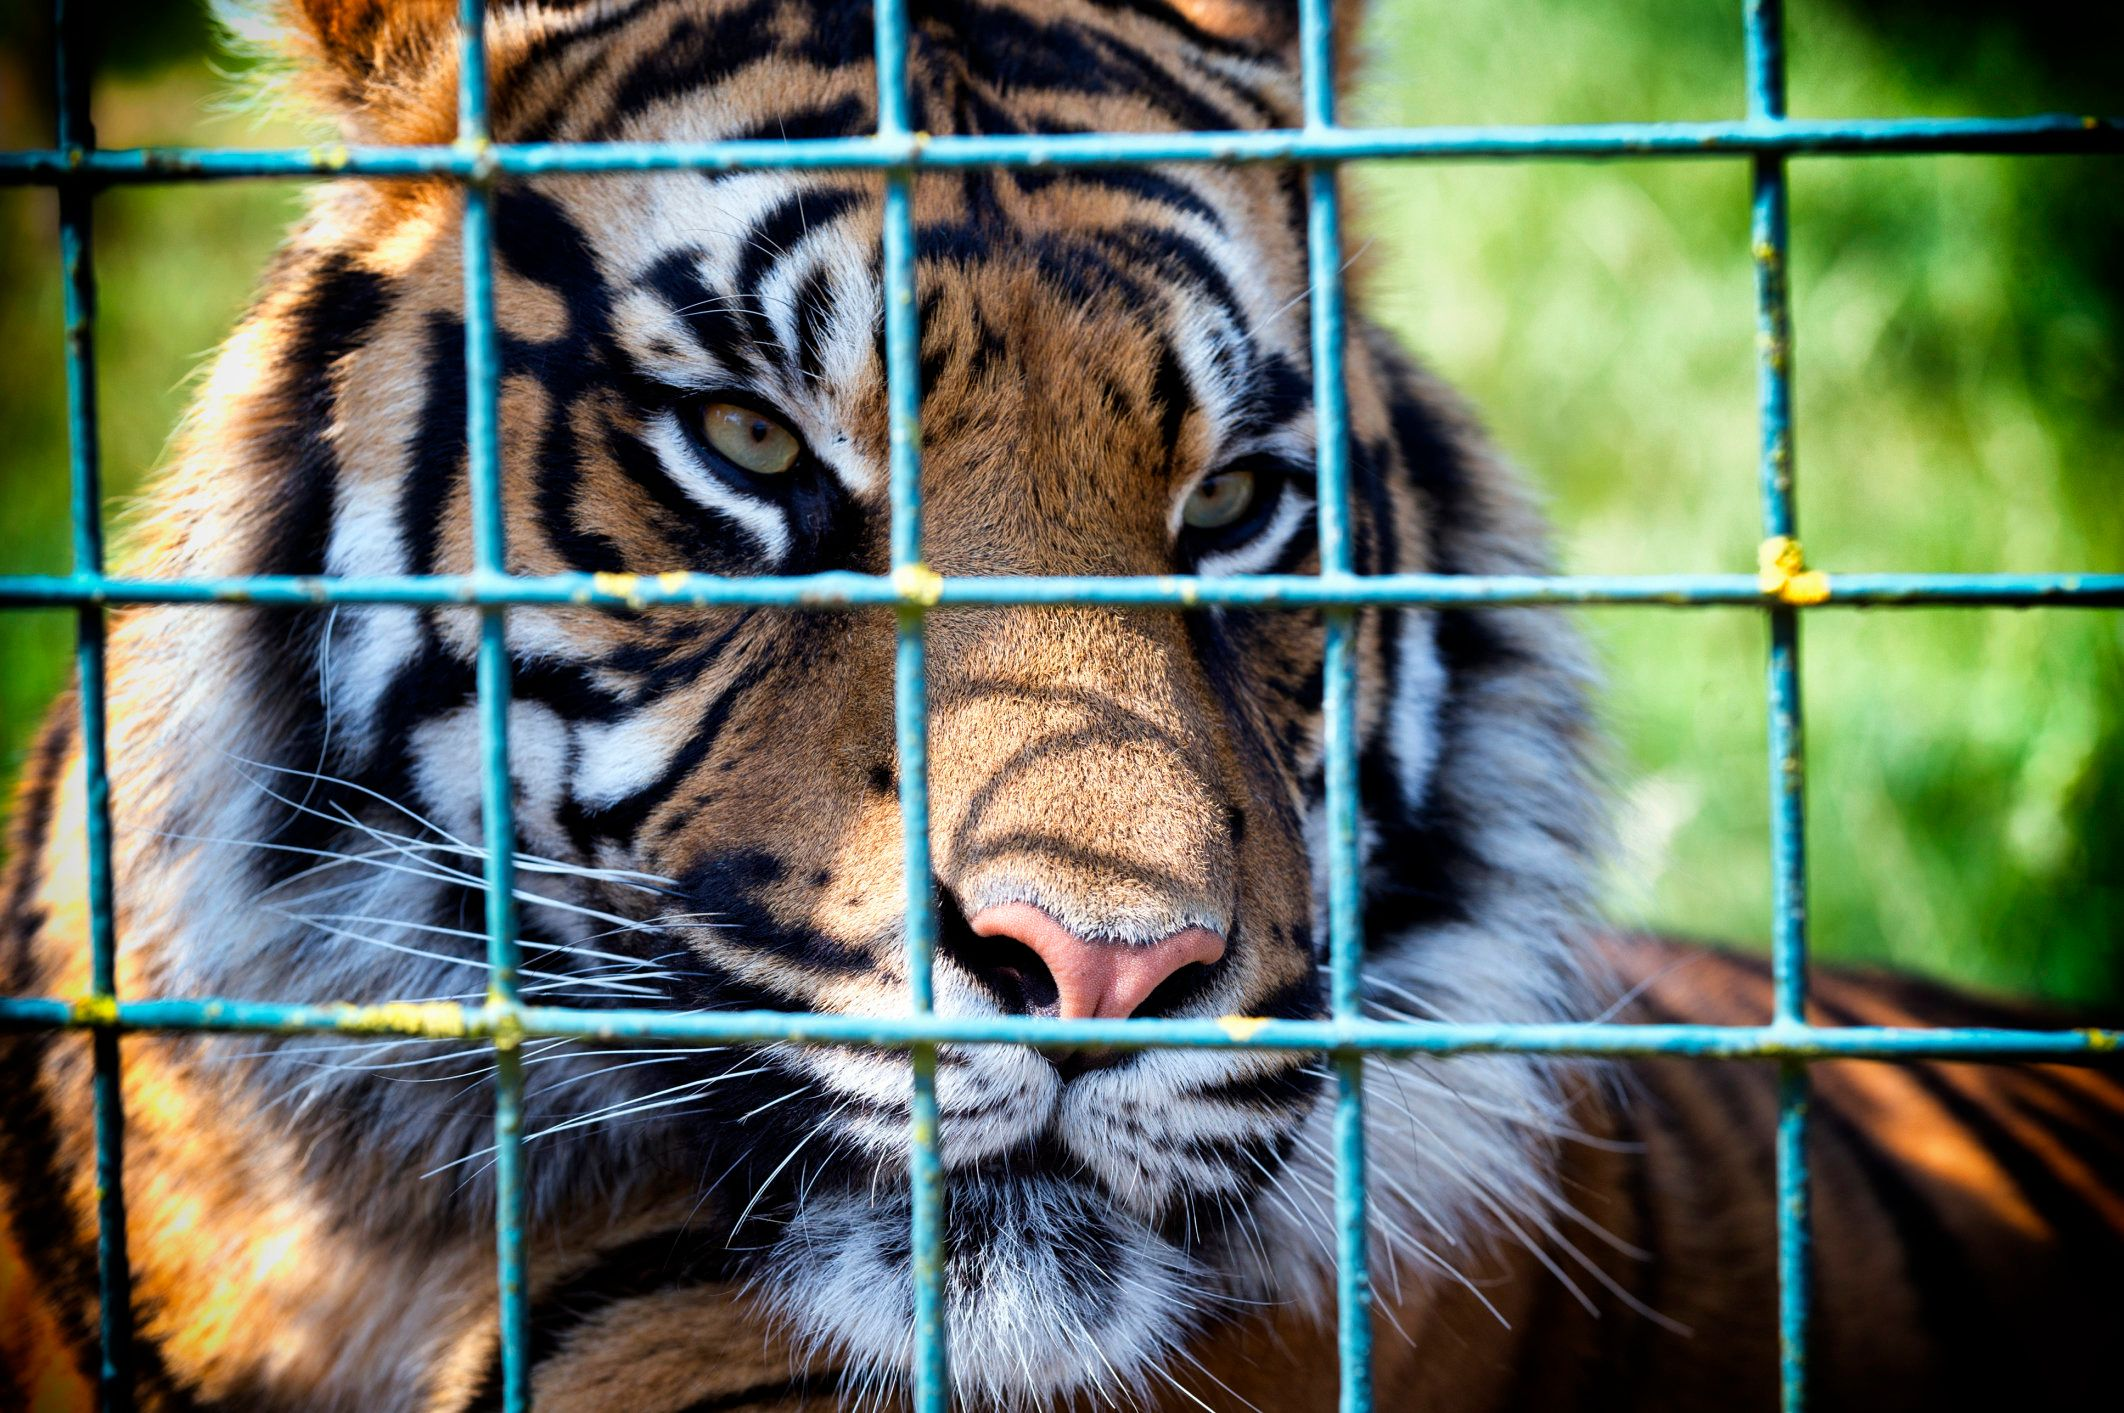 Two federal agencies promised this week to increase federal oversight of America's captive tiger population, estimated to num